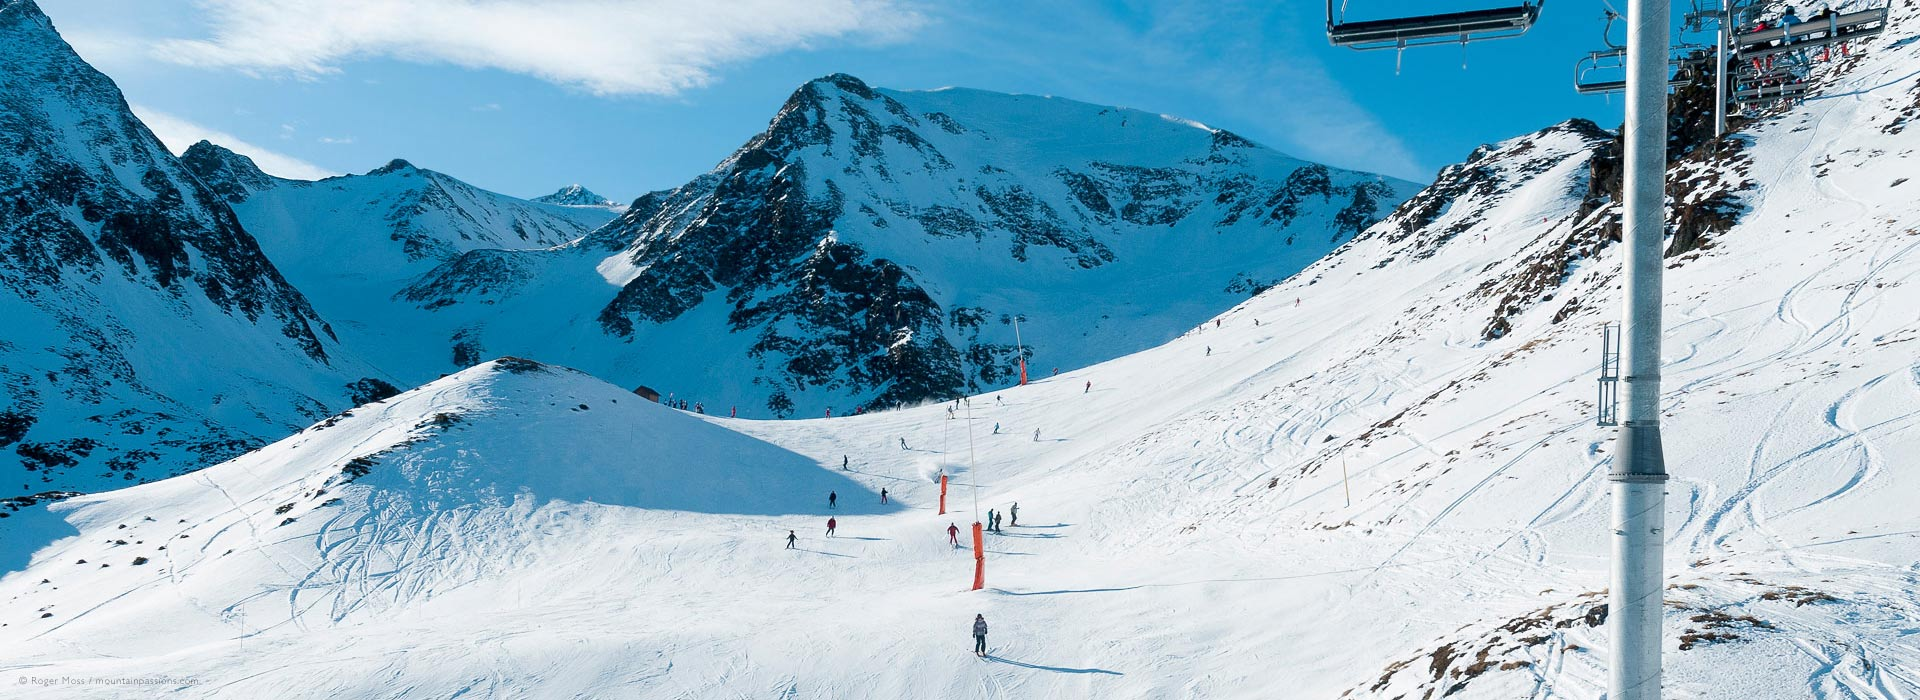 Overview from chair lift of ski terrain at Peyragudes